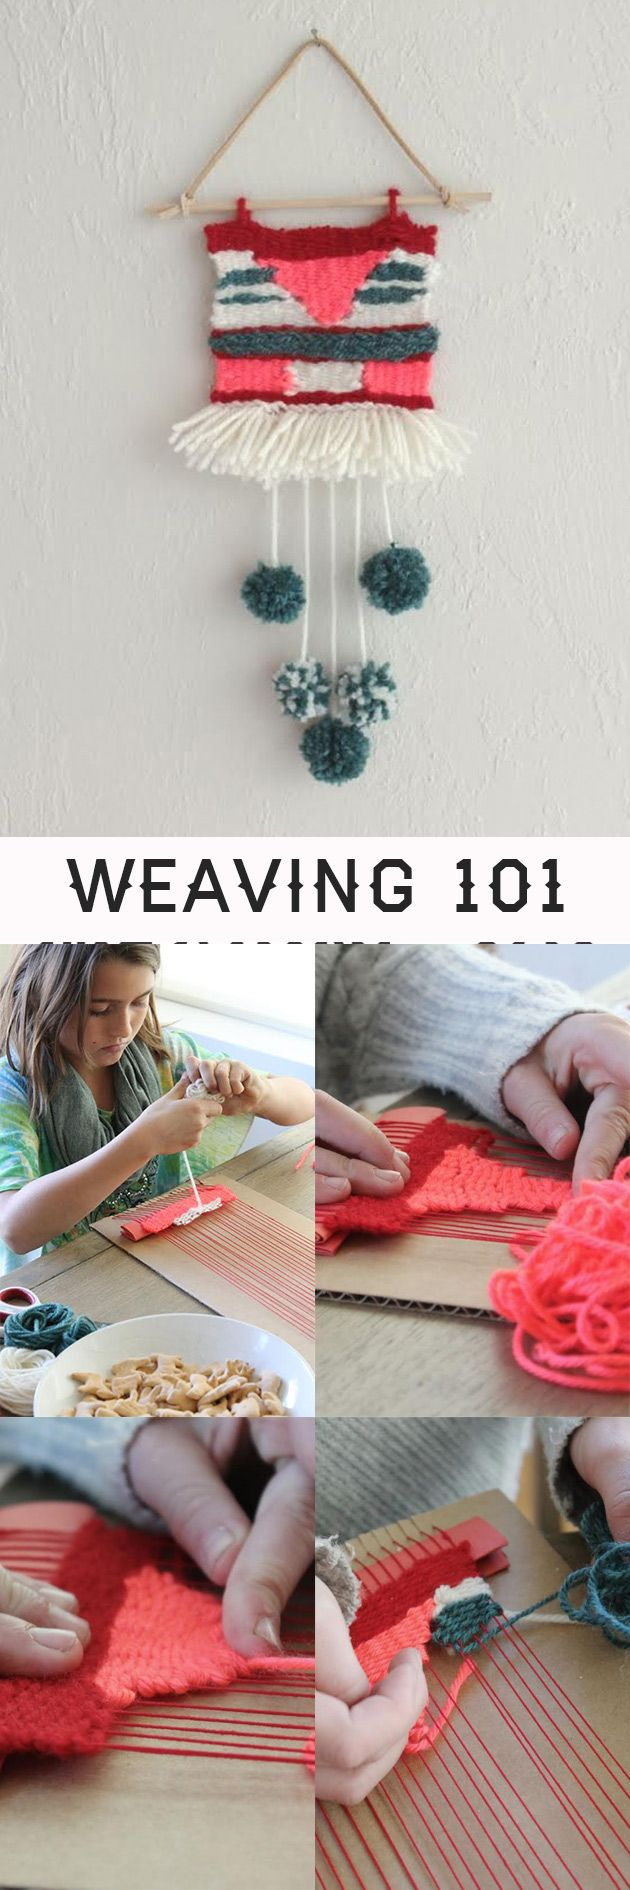 DIY on a wonderful weaving project for kids and grown-ups… I can't wait to try it!